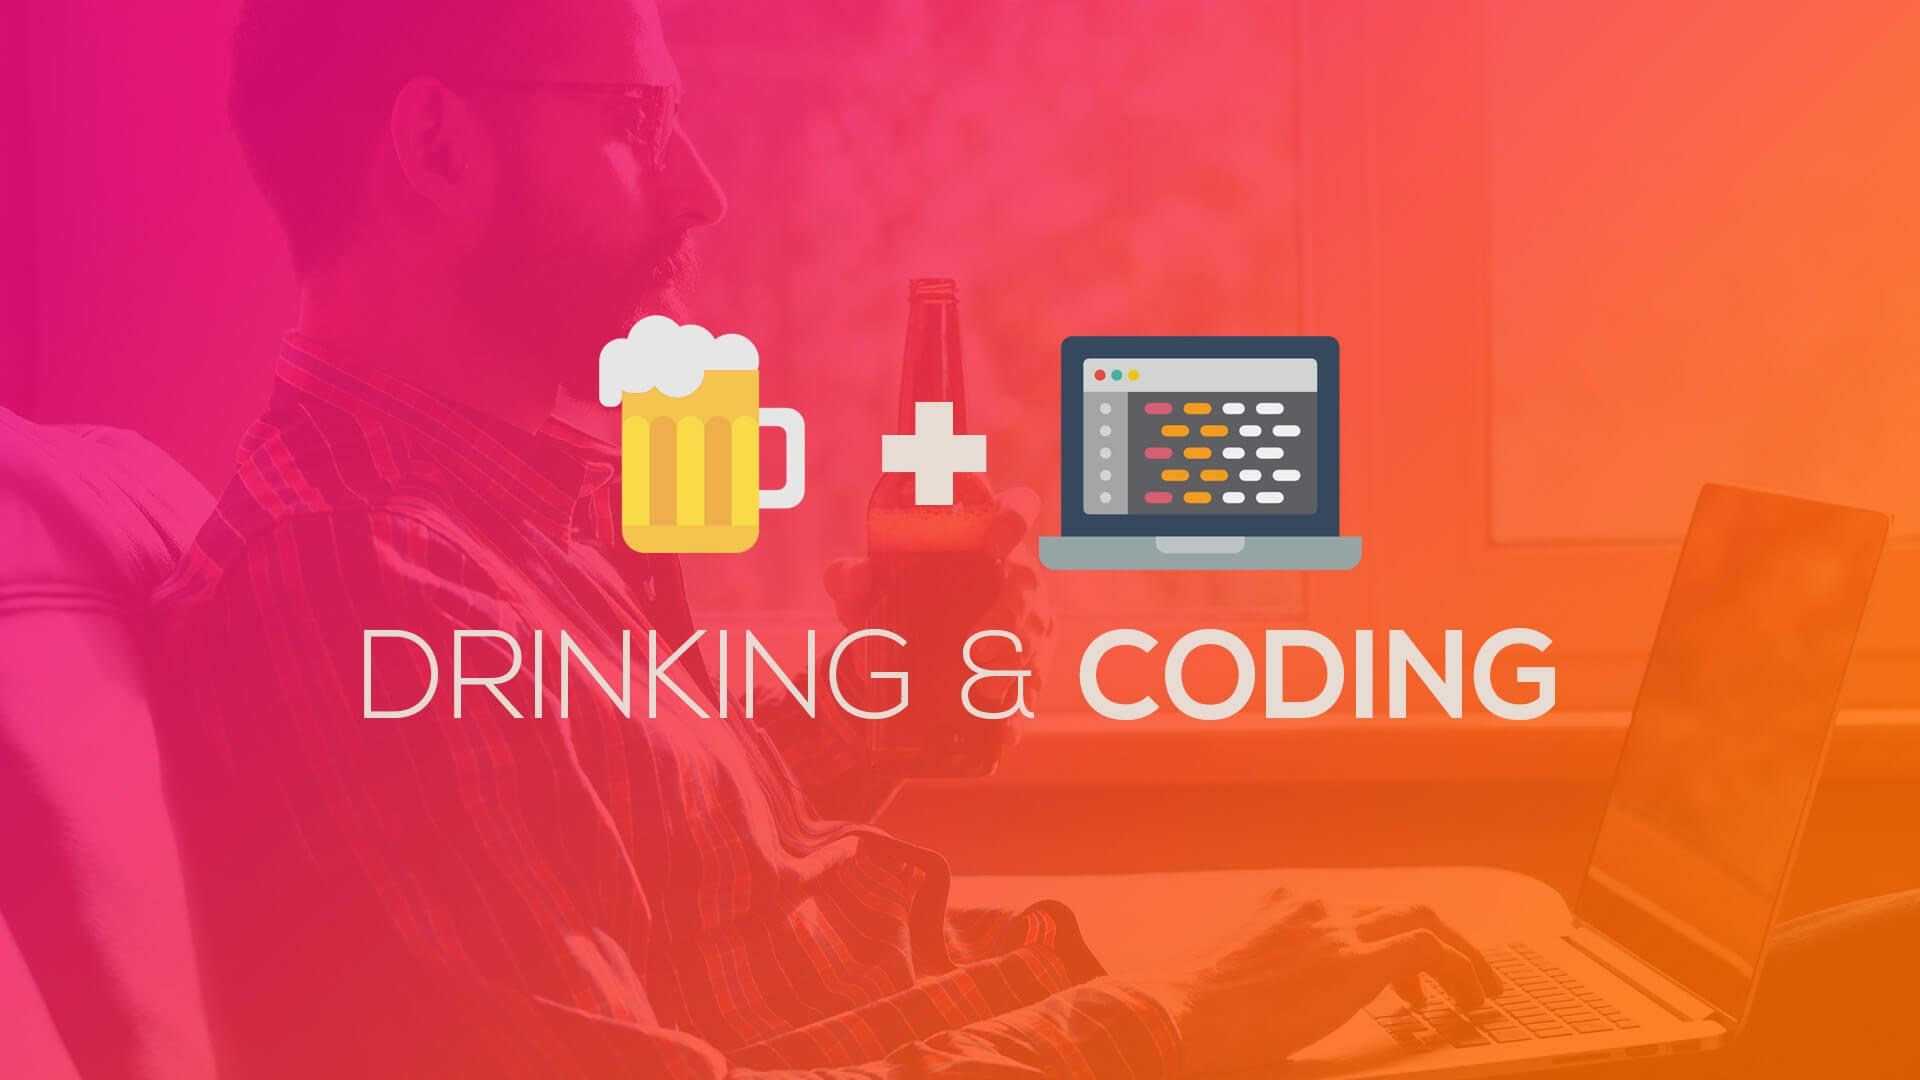 Drinking and Coding